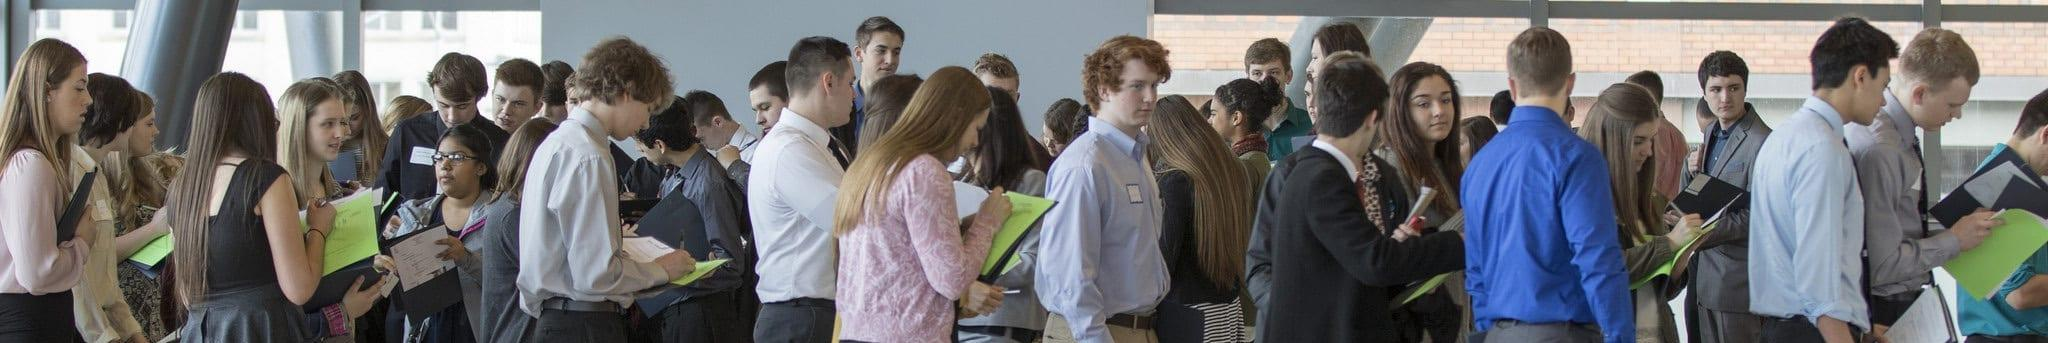 Career Connections 2016 - students wait in line